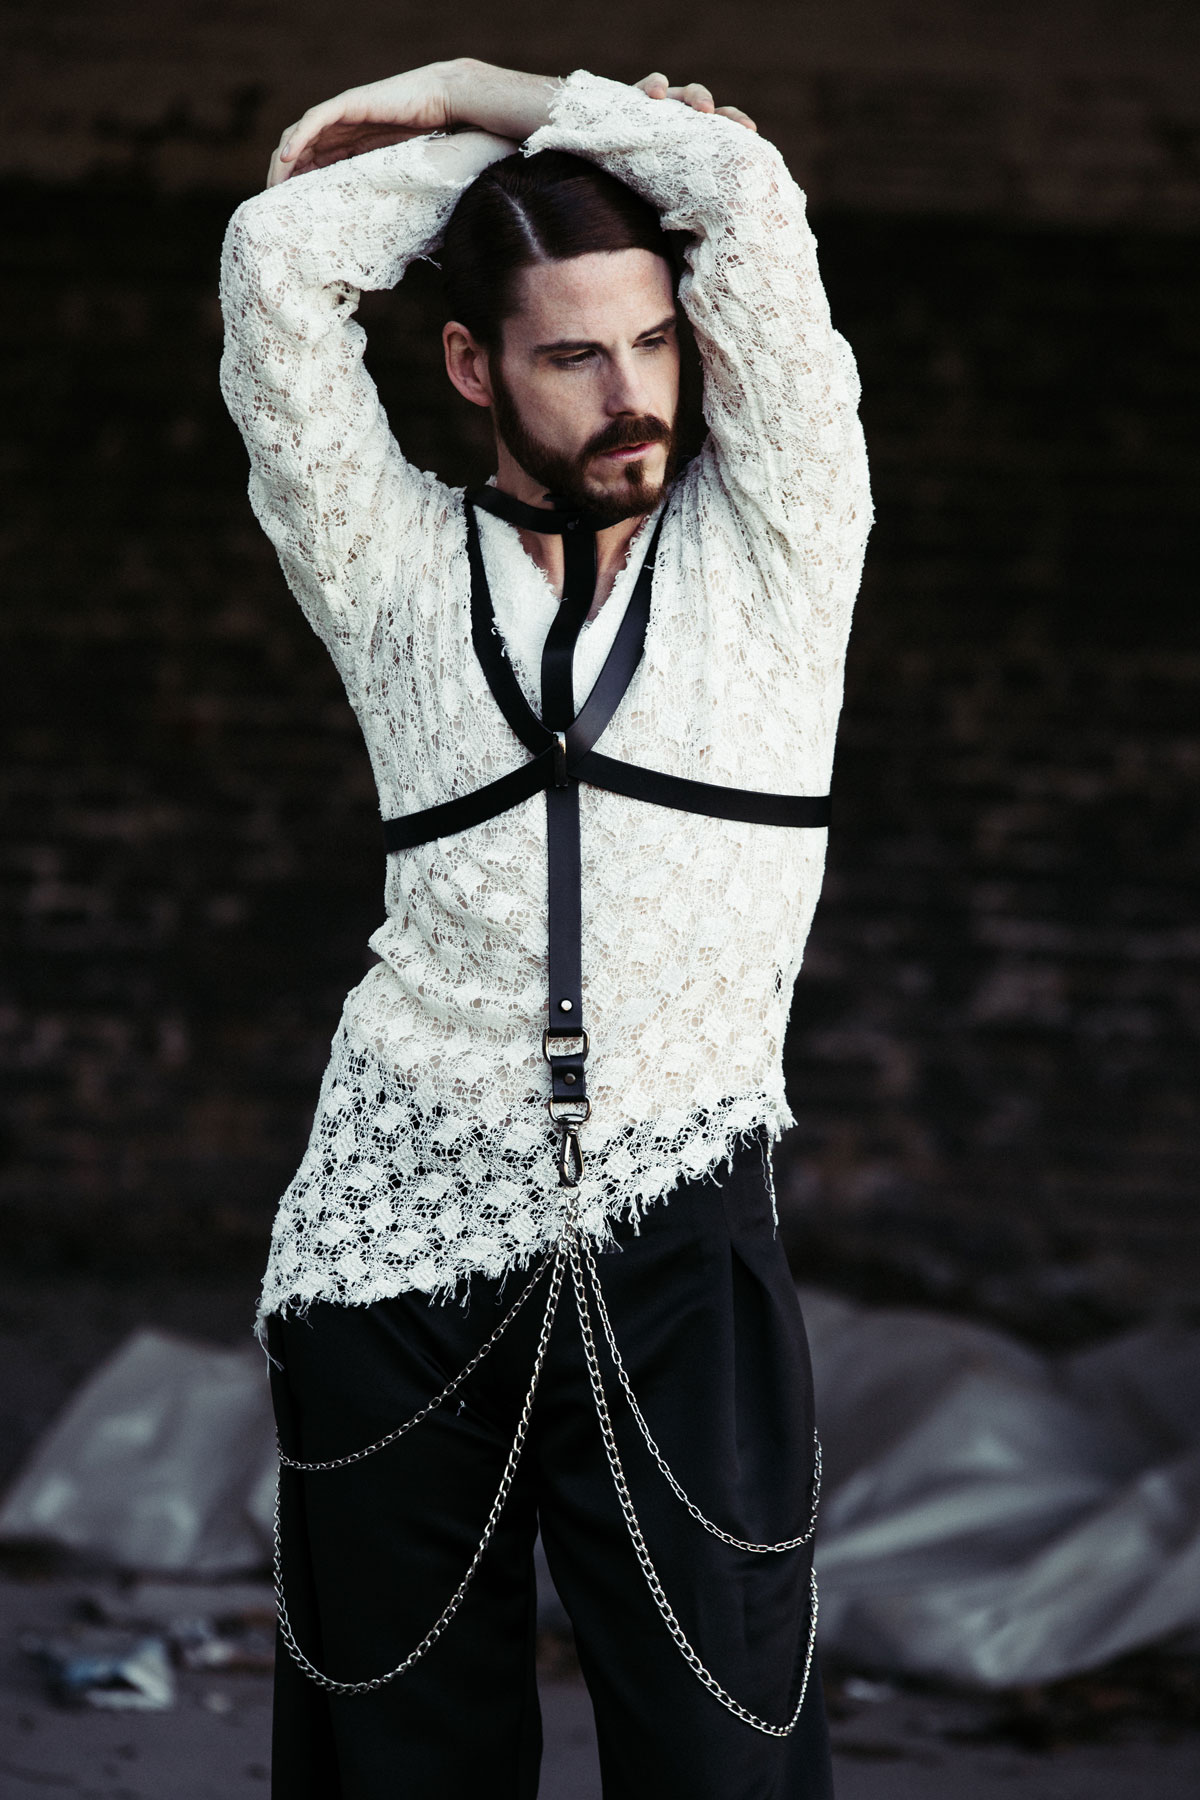 Maennermodeblog-Fetisch-Fashion-Spitze-Mode-Harness-Gay-Editorial